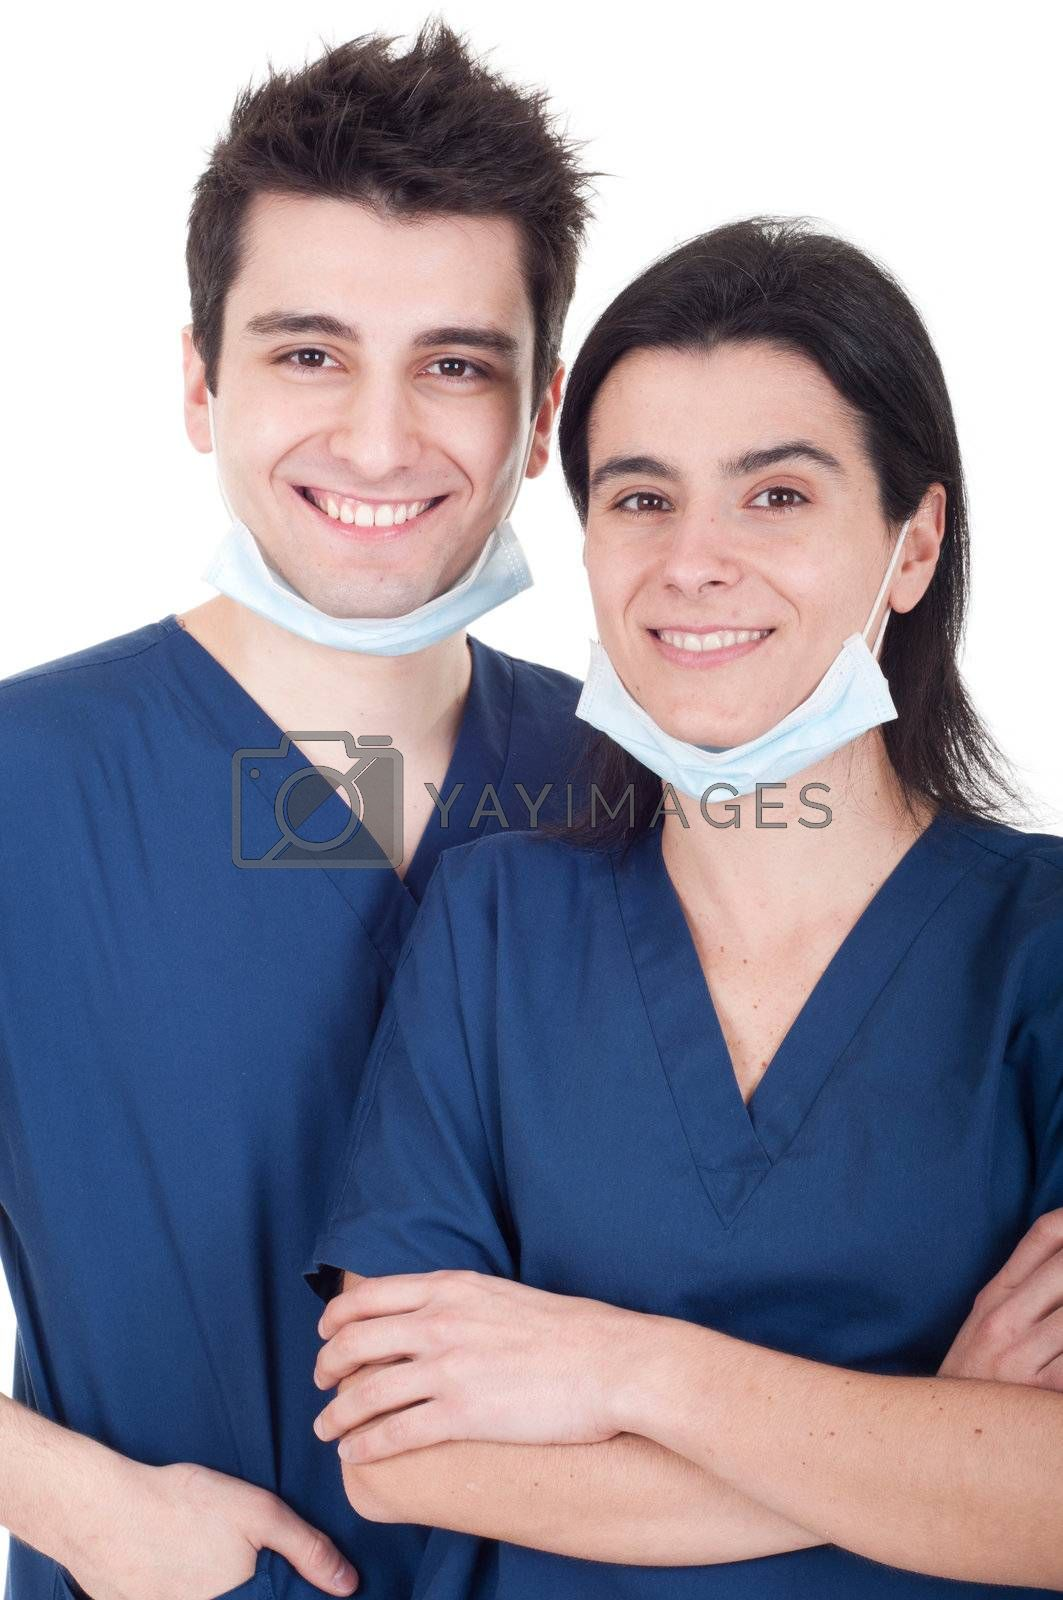 portrait of a team of doctors, man and woman wearing mask and uniform isolated on white background